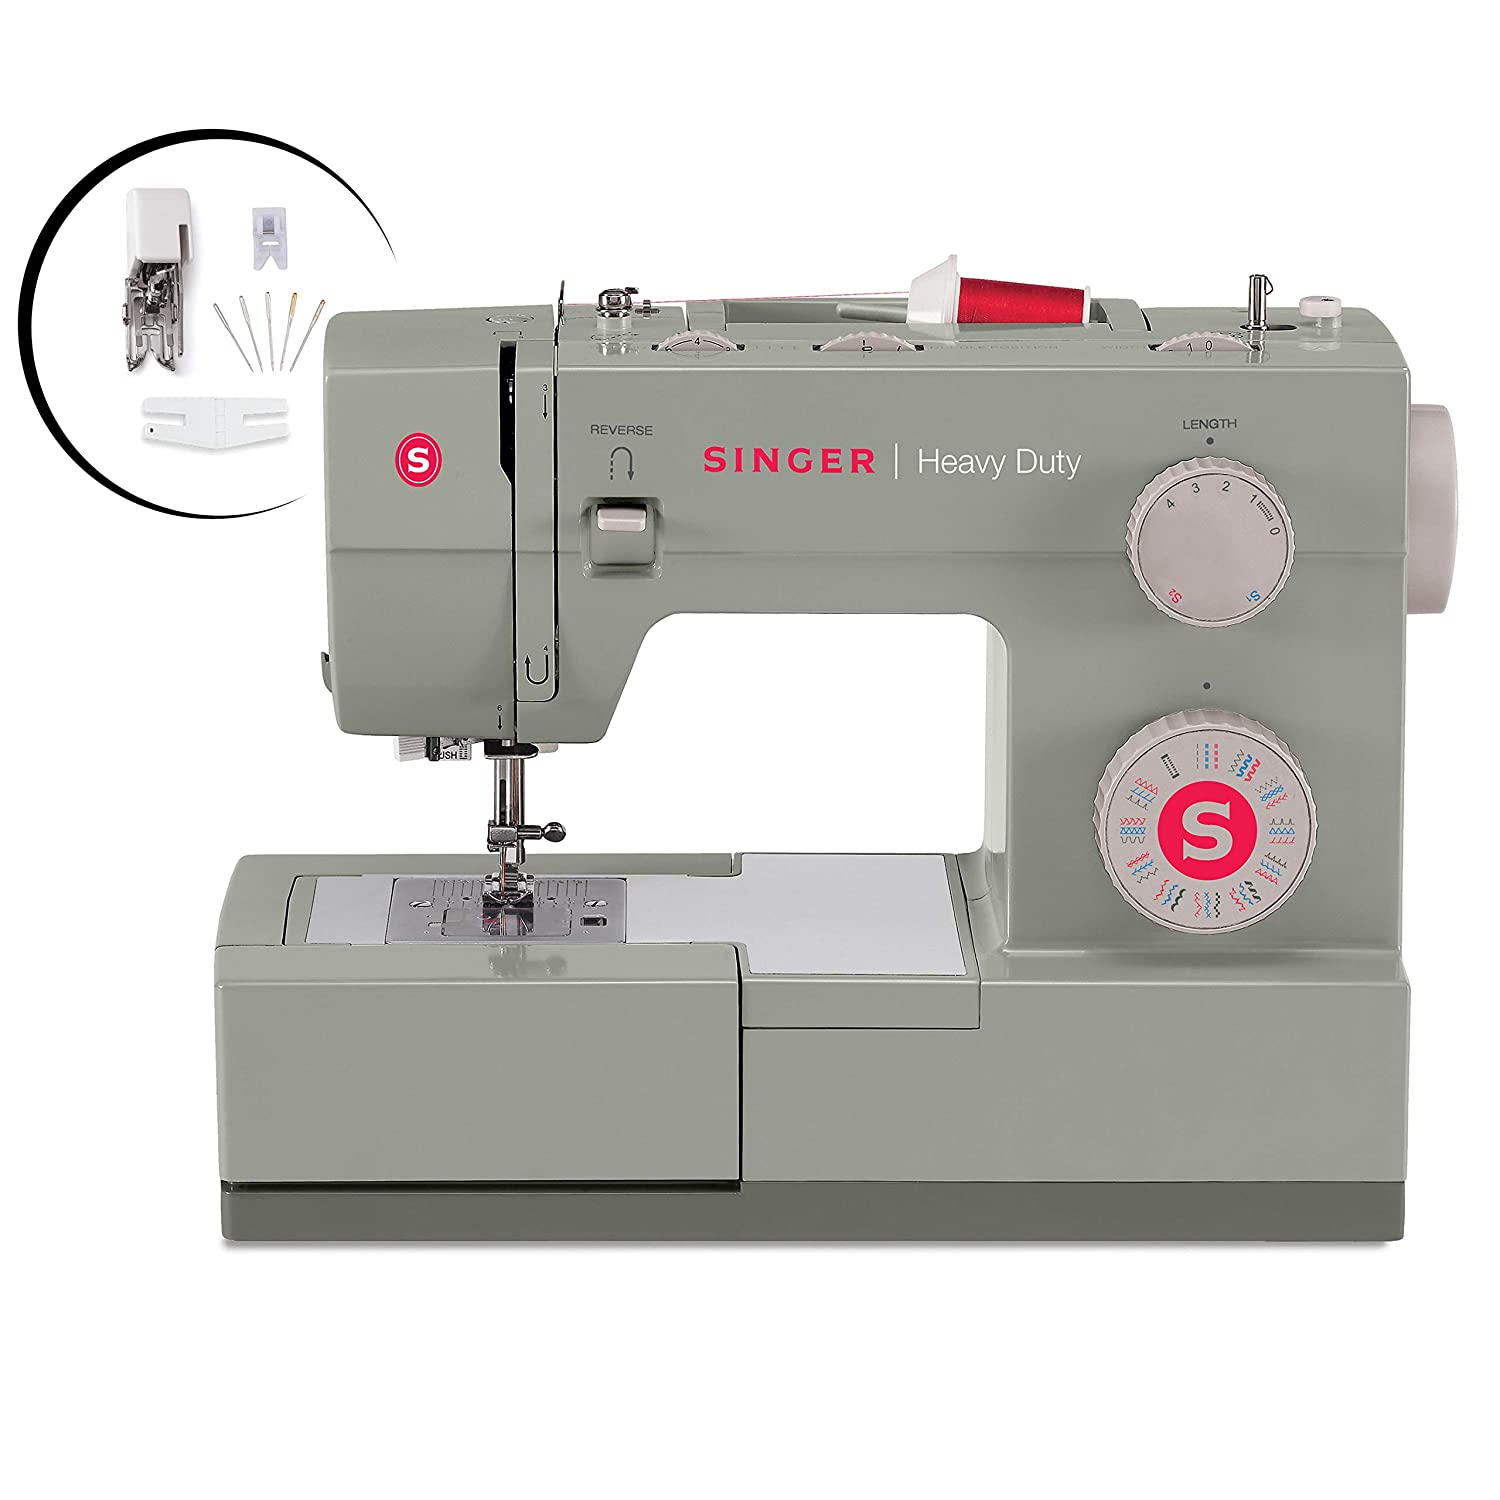 Top 10 Best Heavy Duty Sewing Machine Reviews in 2020 2